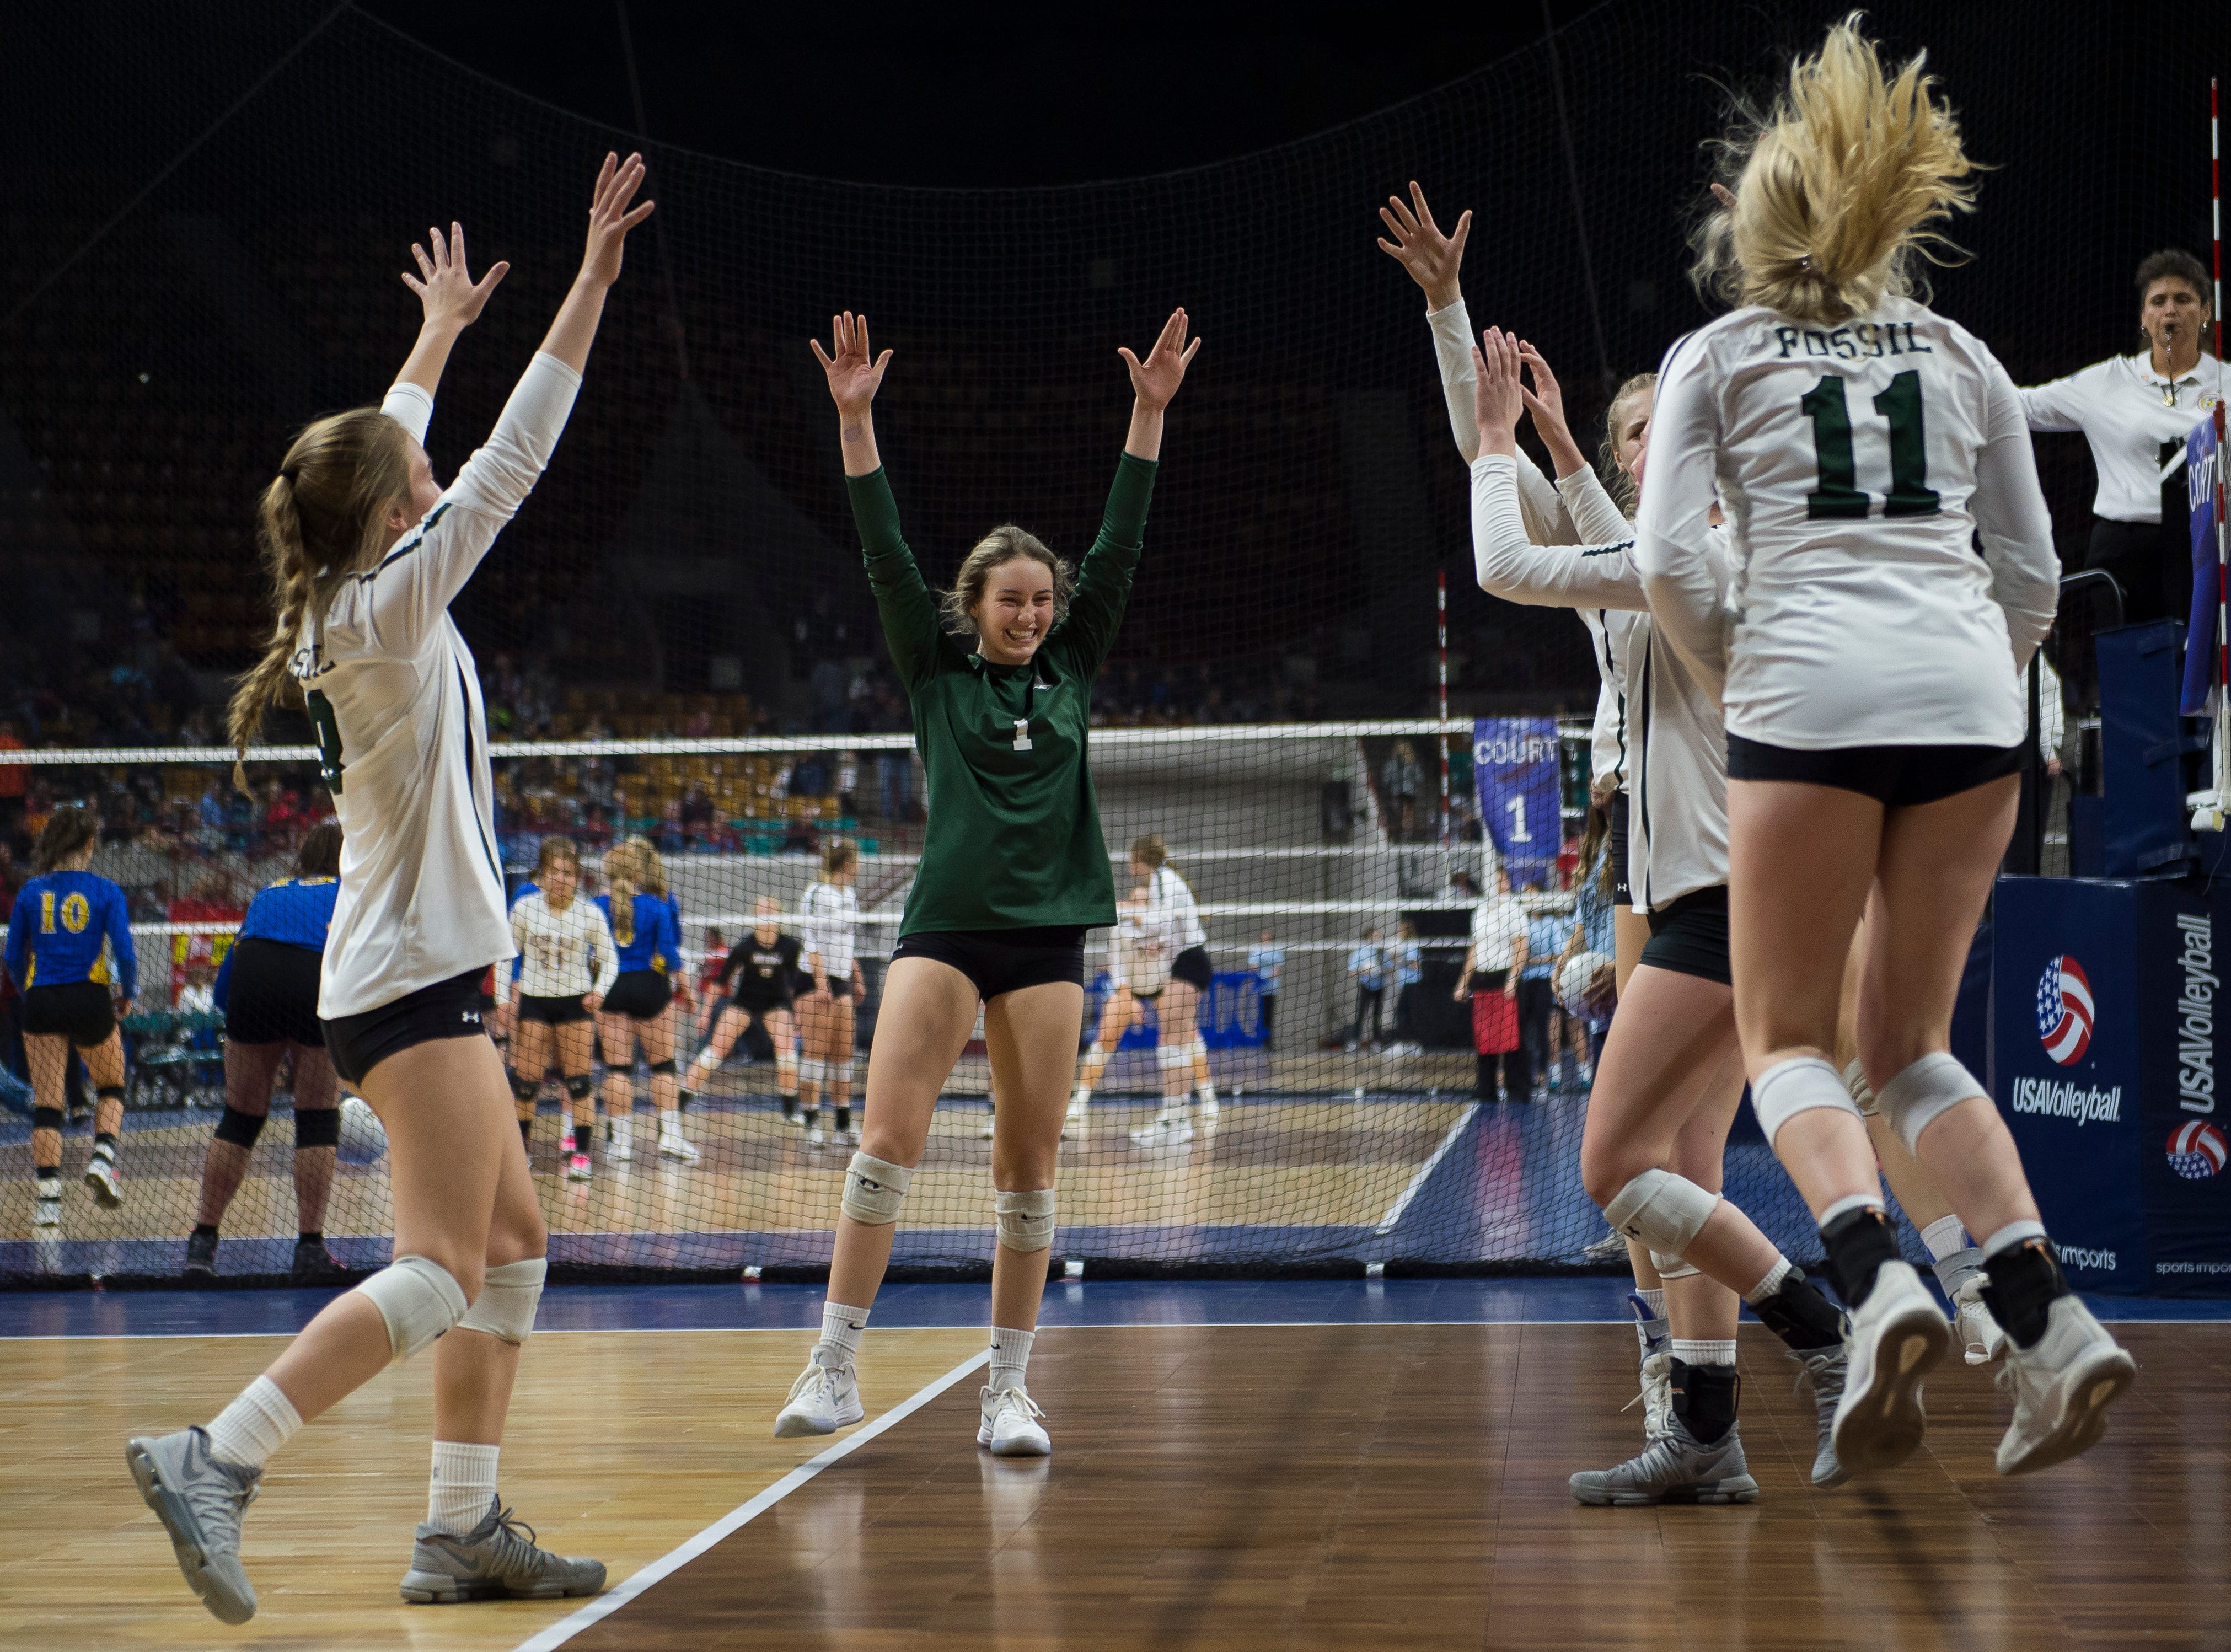 The Fossil Ridge High School volleyball team celebrate a point during a state first round game against Windsor High School on Thursday, Nov. 8, 2018, at the Denver Coliseum in Denver, Colo.